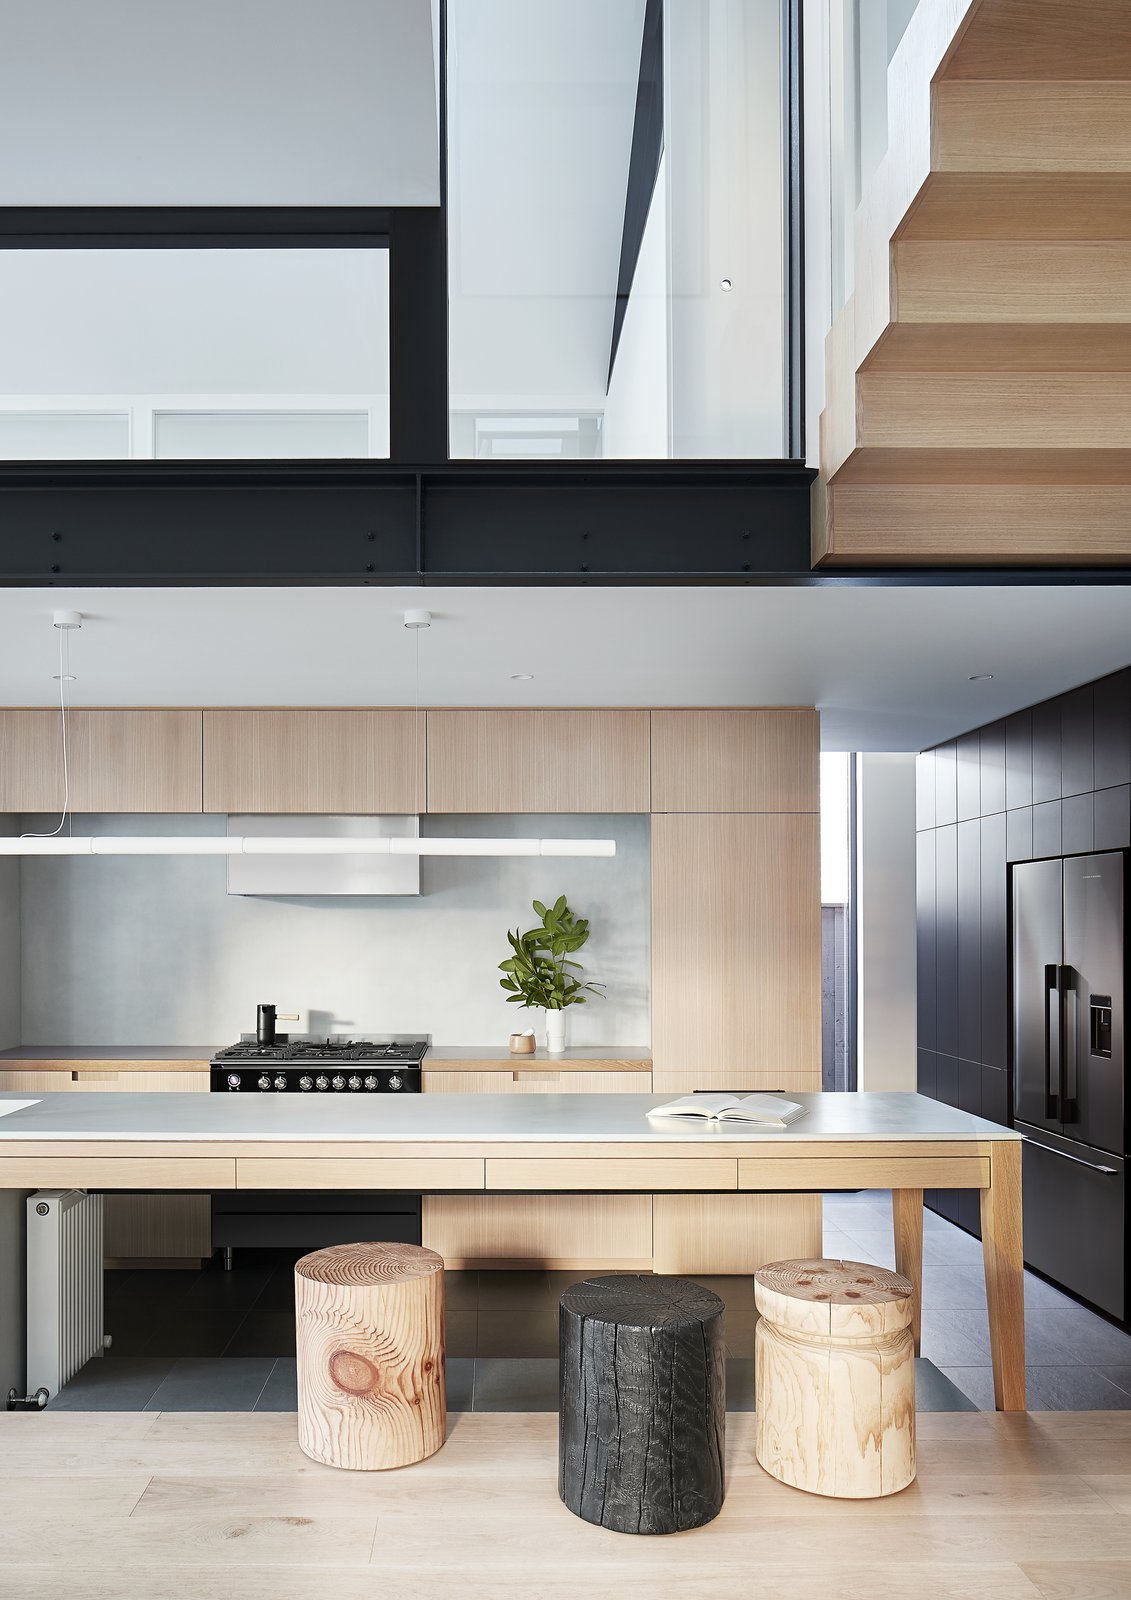 An Australian Kitchen Is Reimagined With Sleek Black Appliances